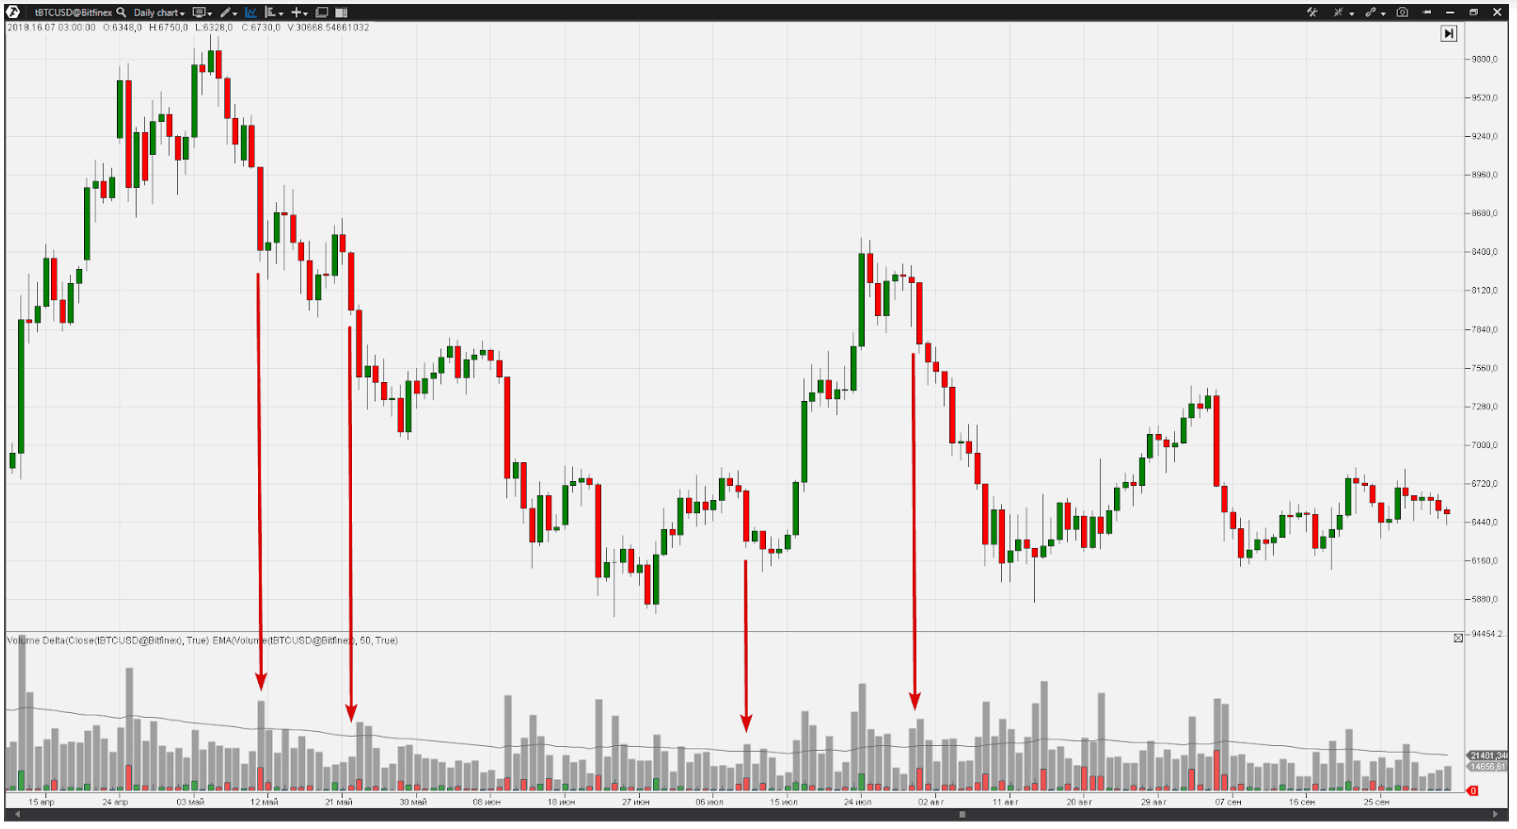 The No Demand pattern in a bitcoin chart